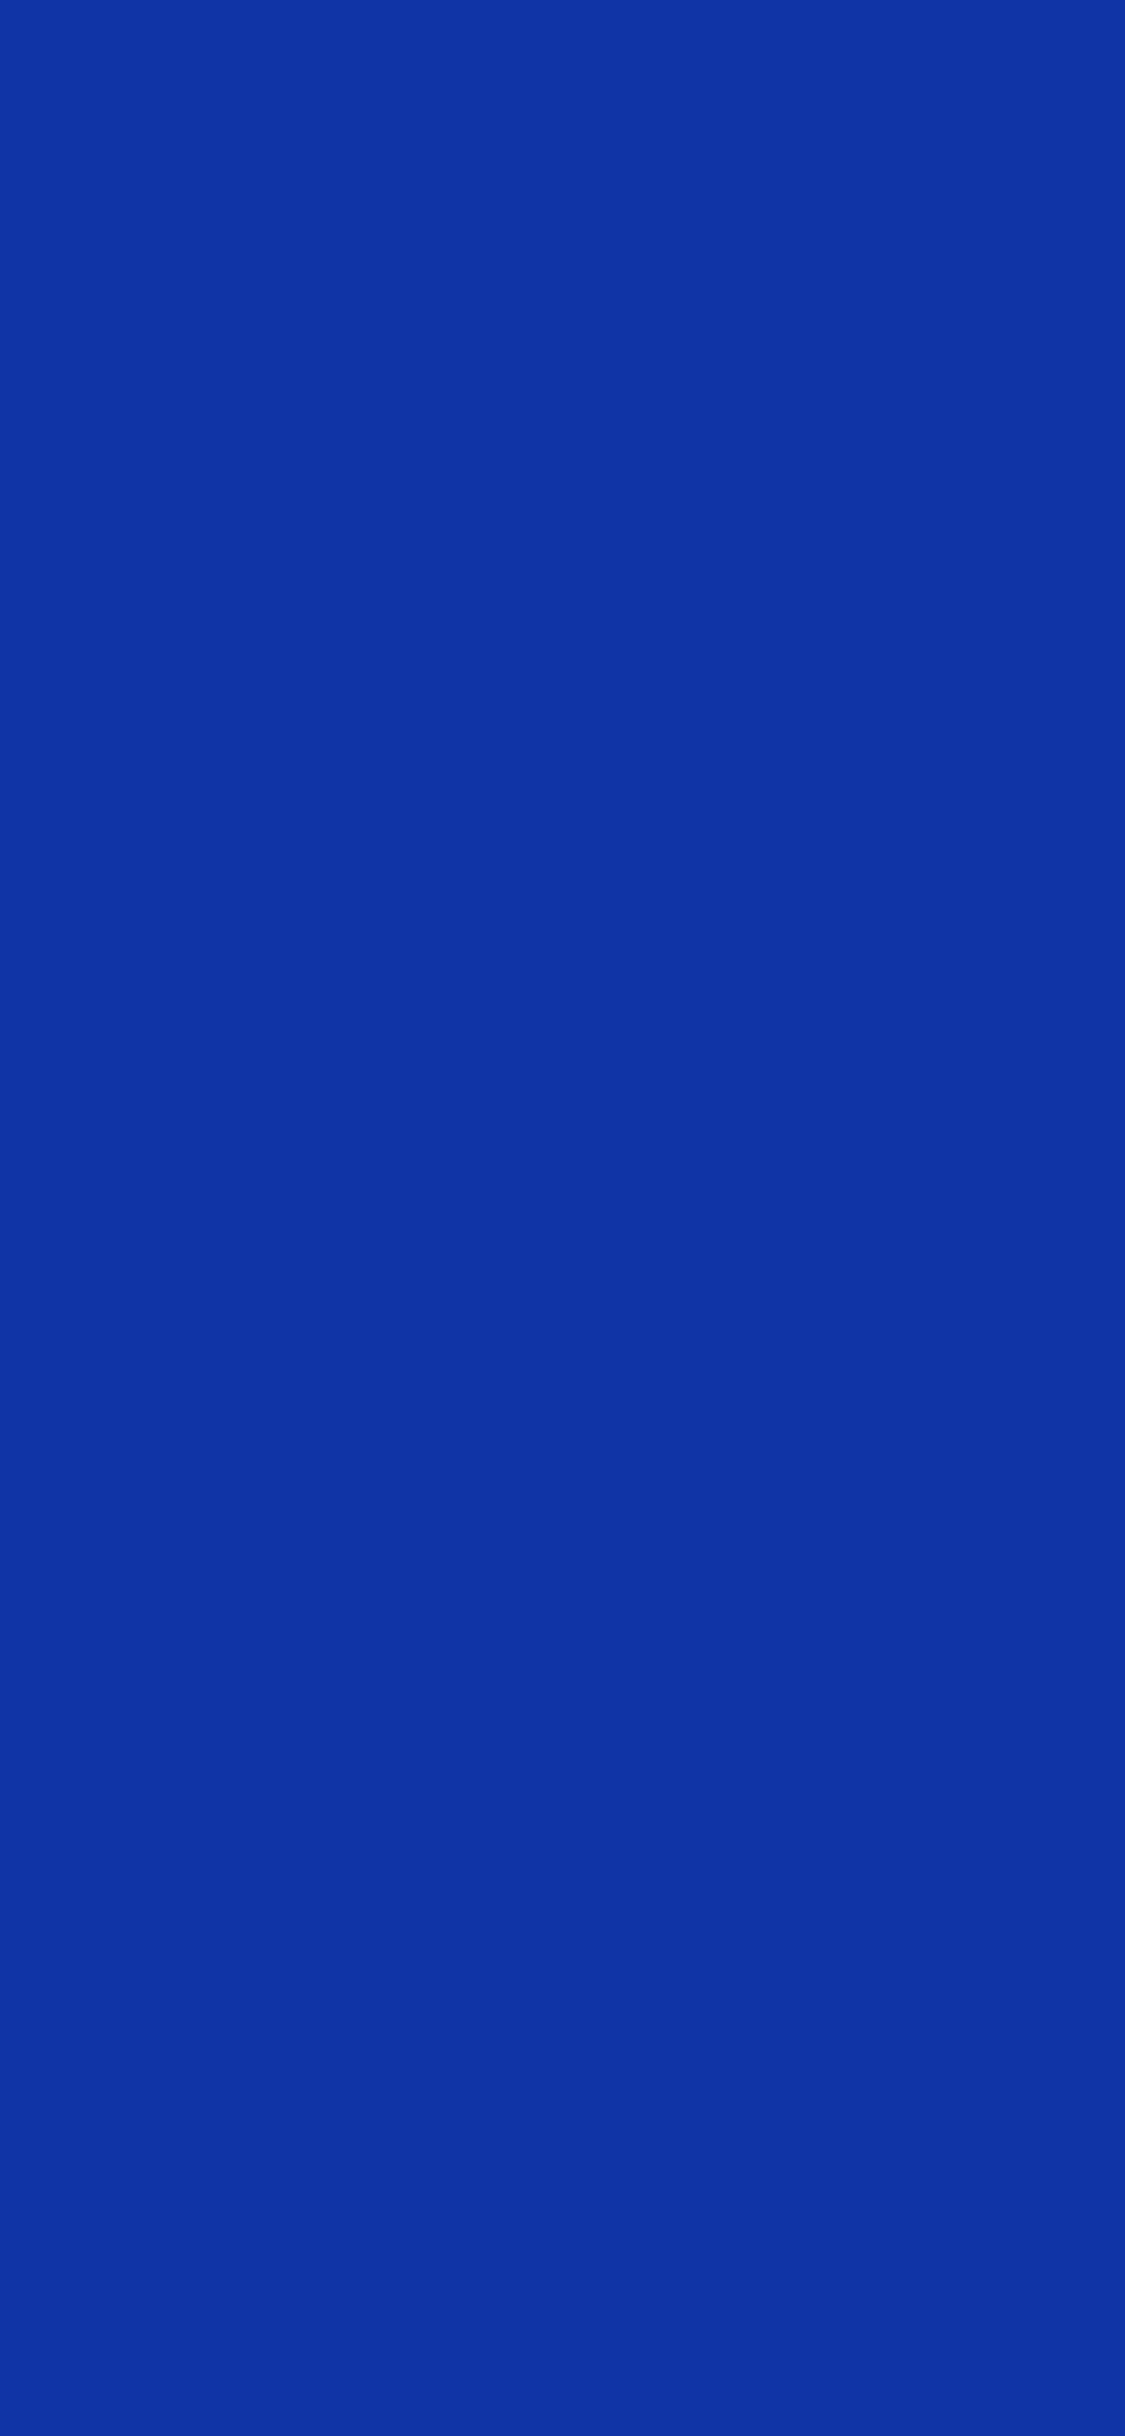 1125x2436 Egyptian Blue Solid Color Background